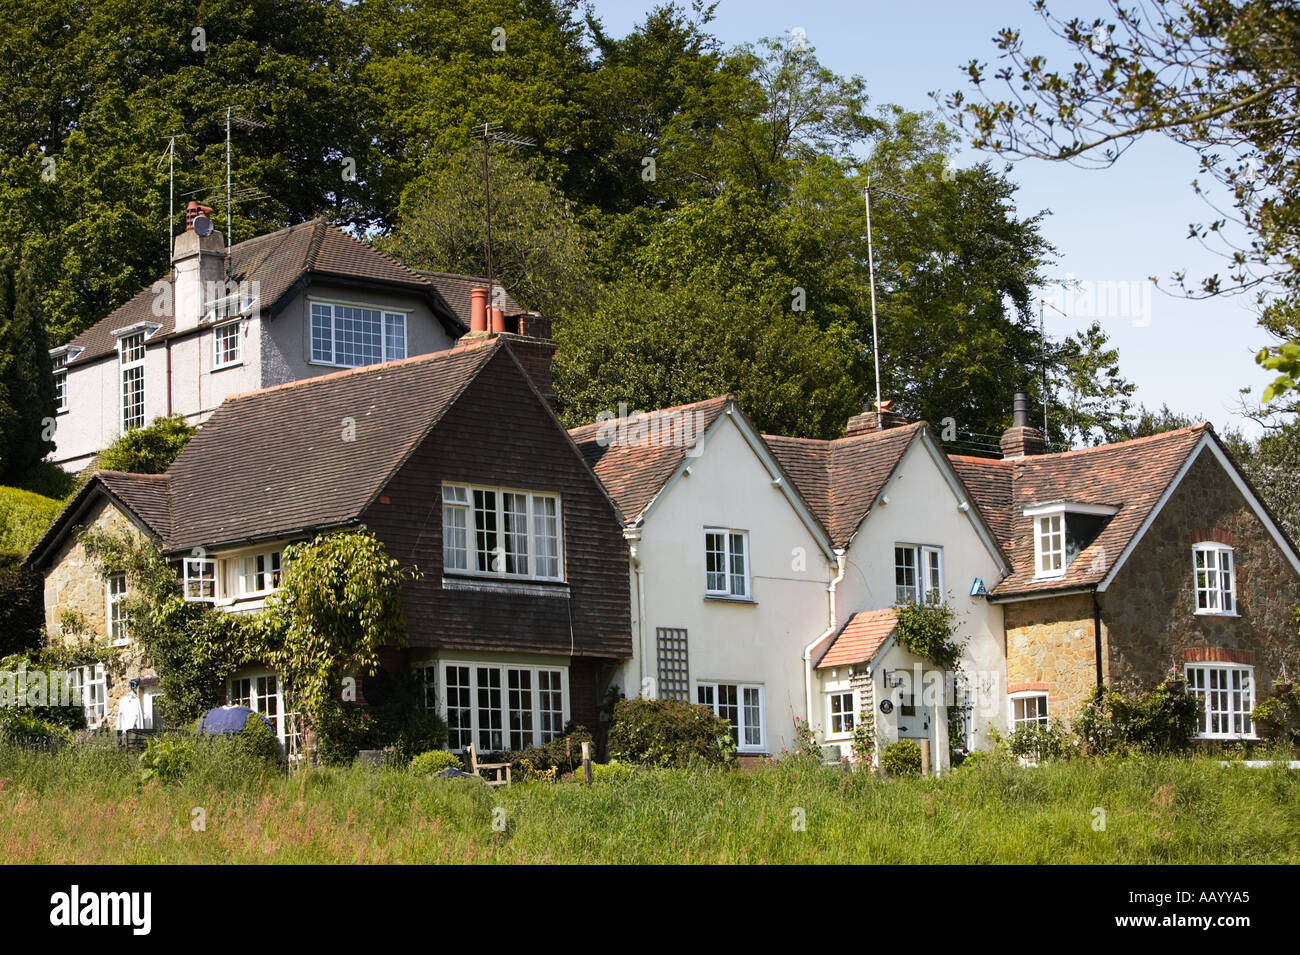 Traditional Old English Houses And Architecture At Coldharbour Surrey England UK